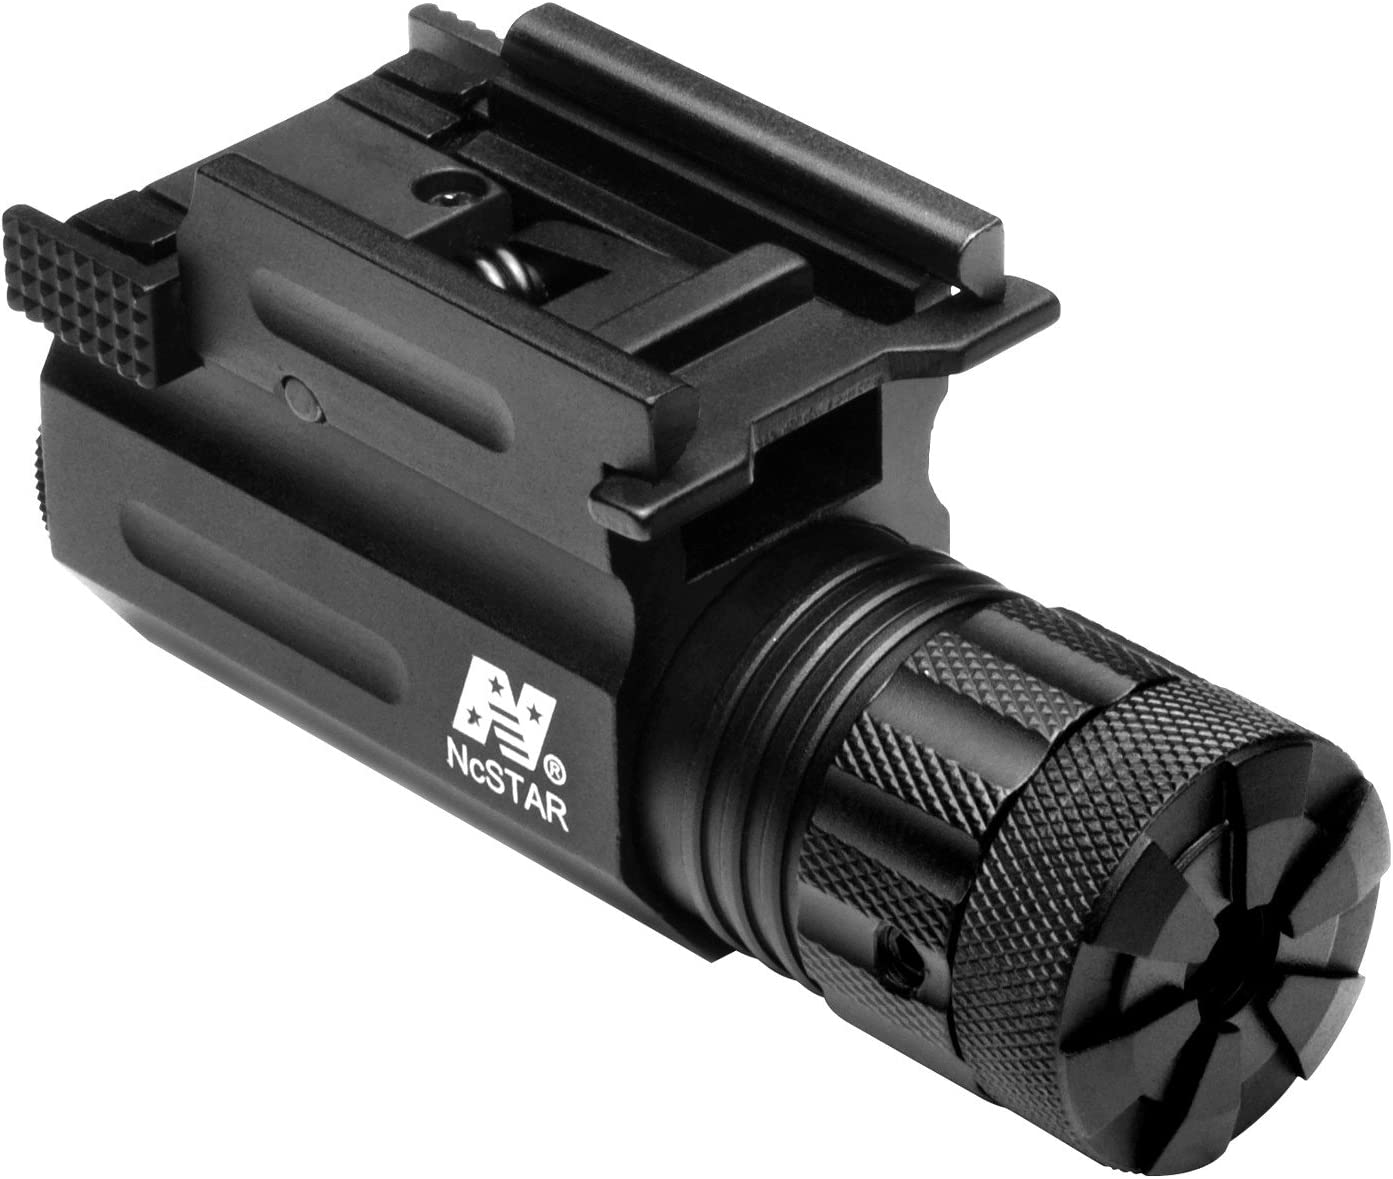 NcSTAR Compact Pistol and Rifle Green Laser with Quick Release Weaver Mount